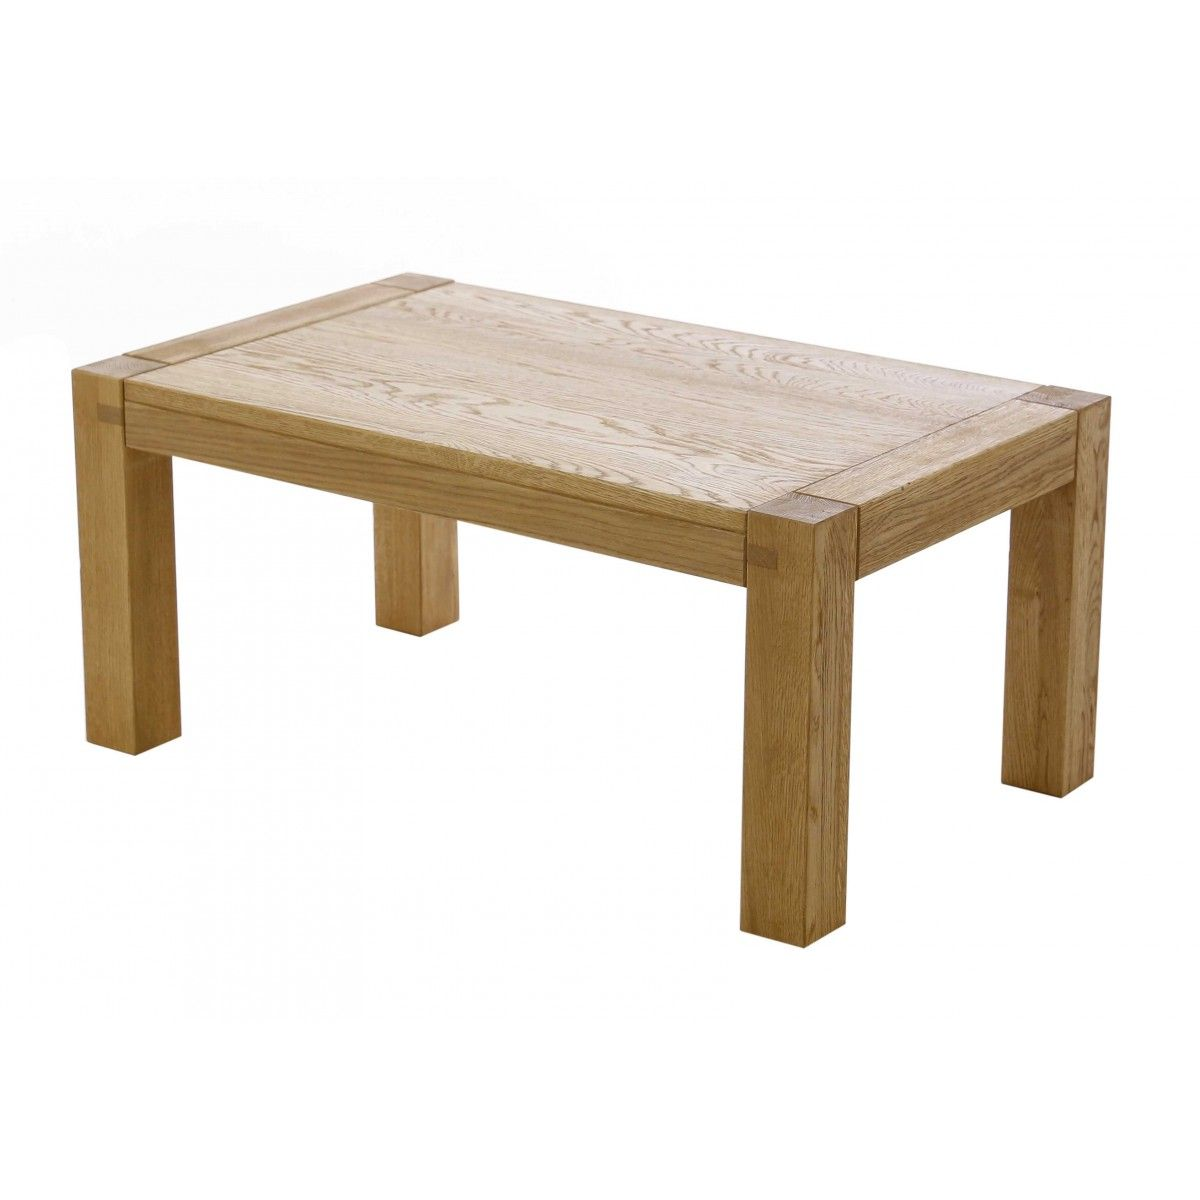 Table Basse En Chene Massif Rectangulaire Table Basse Chene Table Basse Table Basse Chene Massif